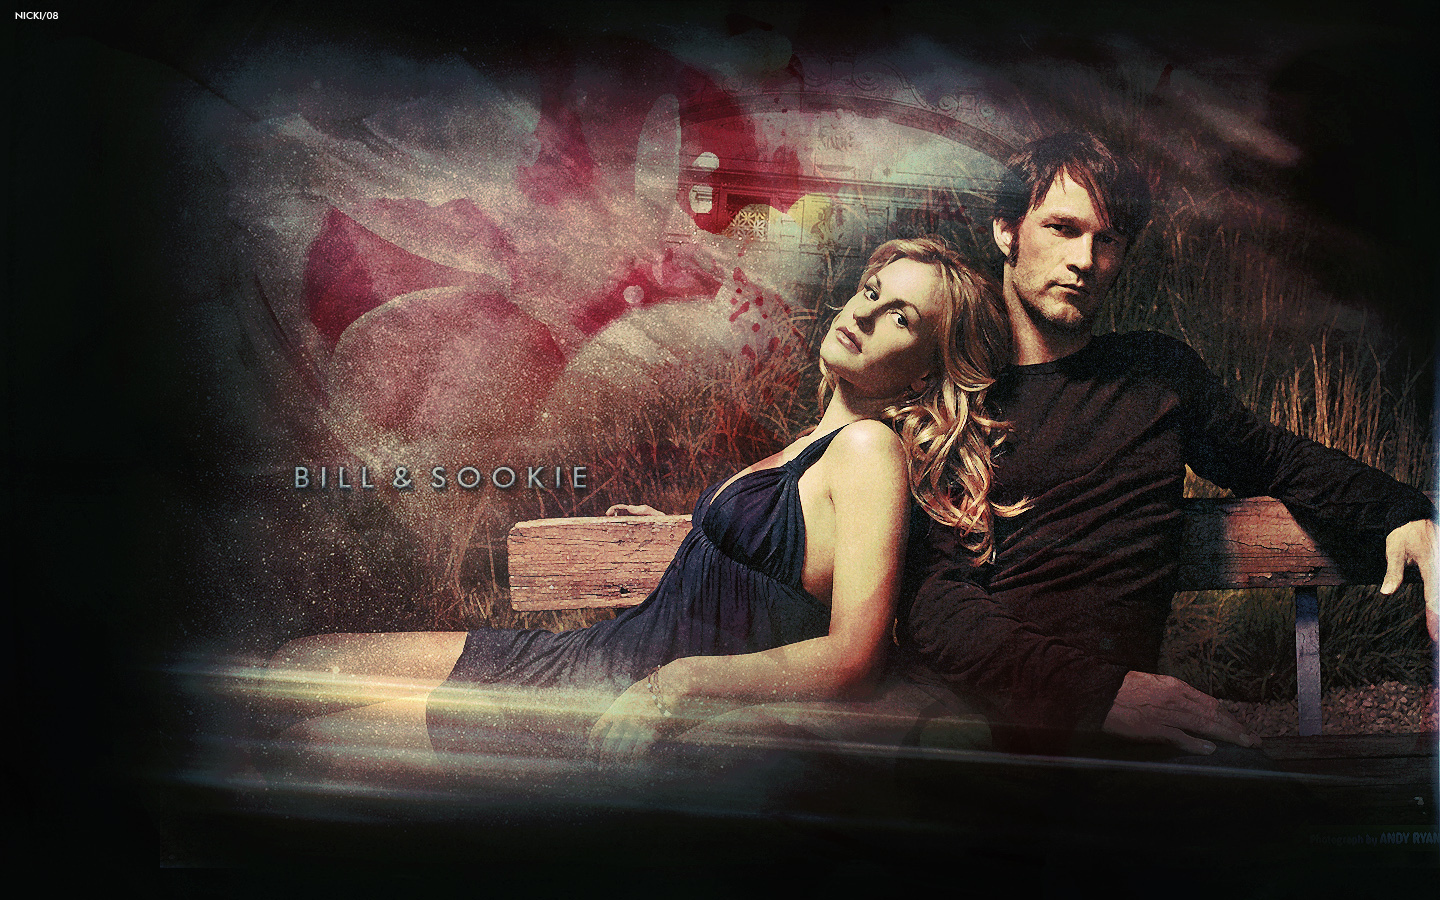 Couples - Bill ღ Sookie (True Blood) #1: Because it was